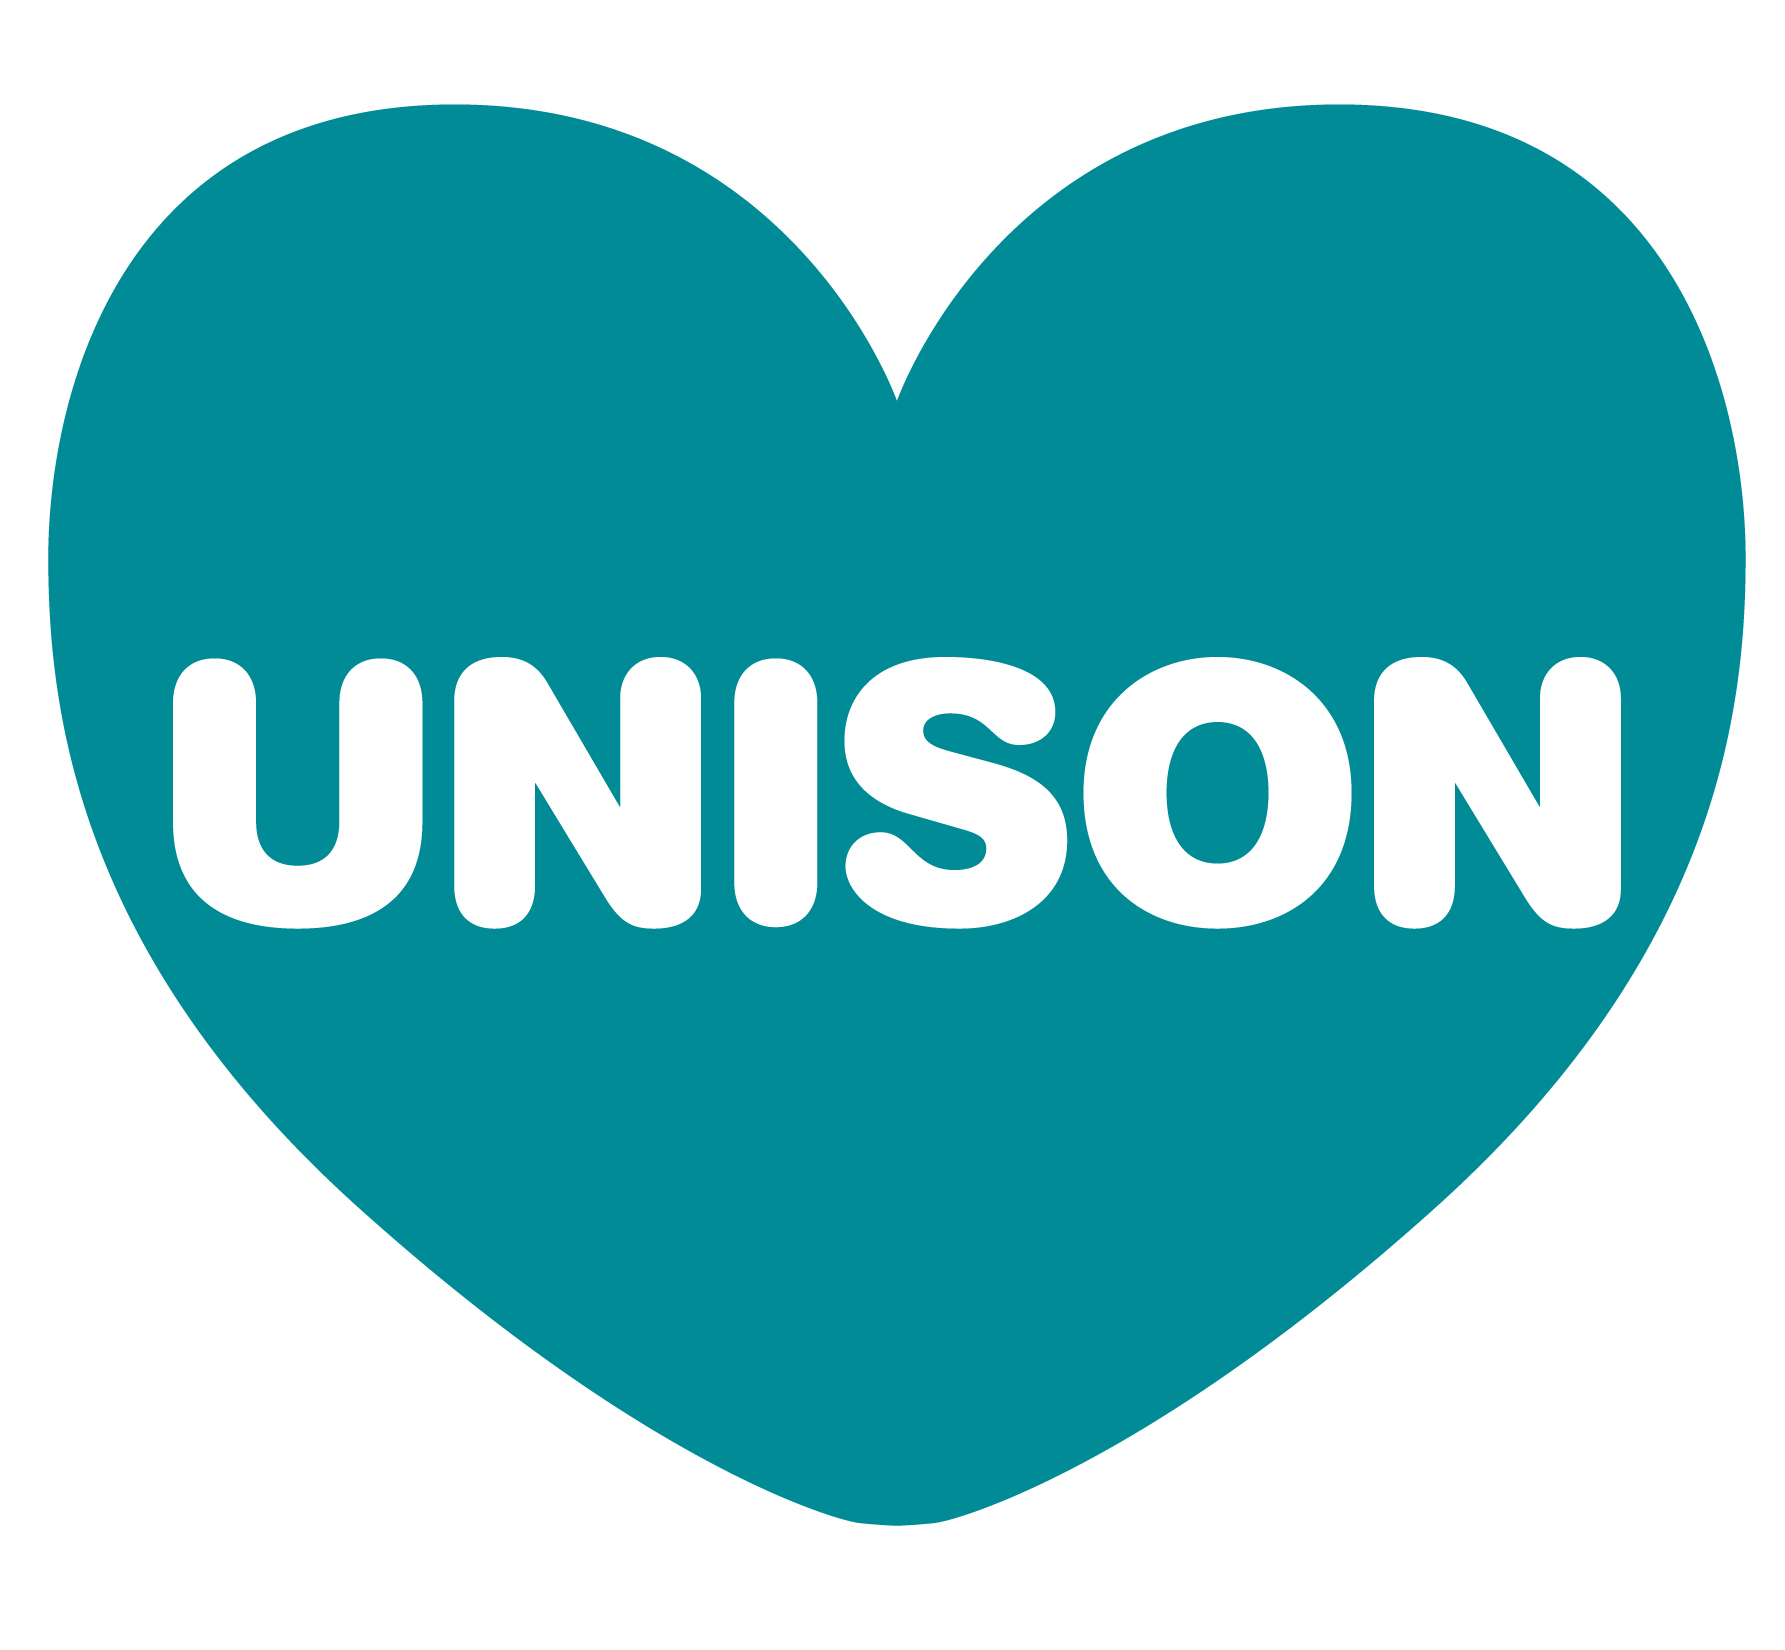 Heart Unison Logotype Contained